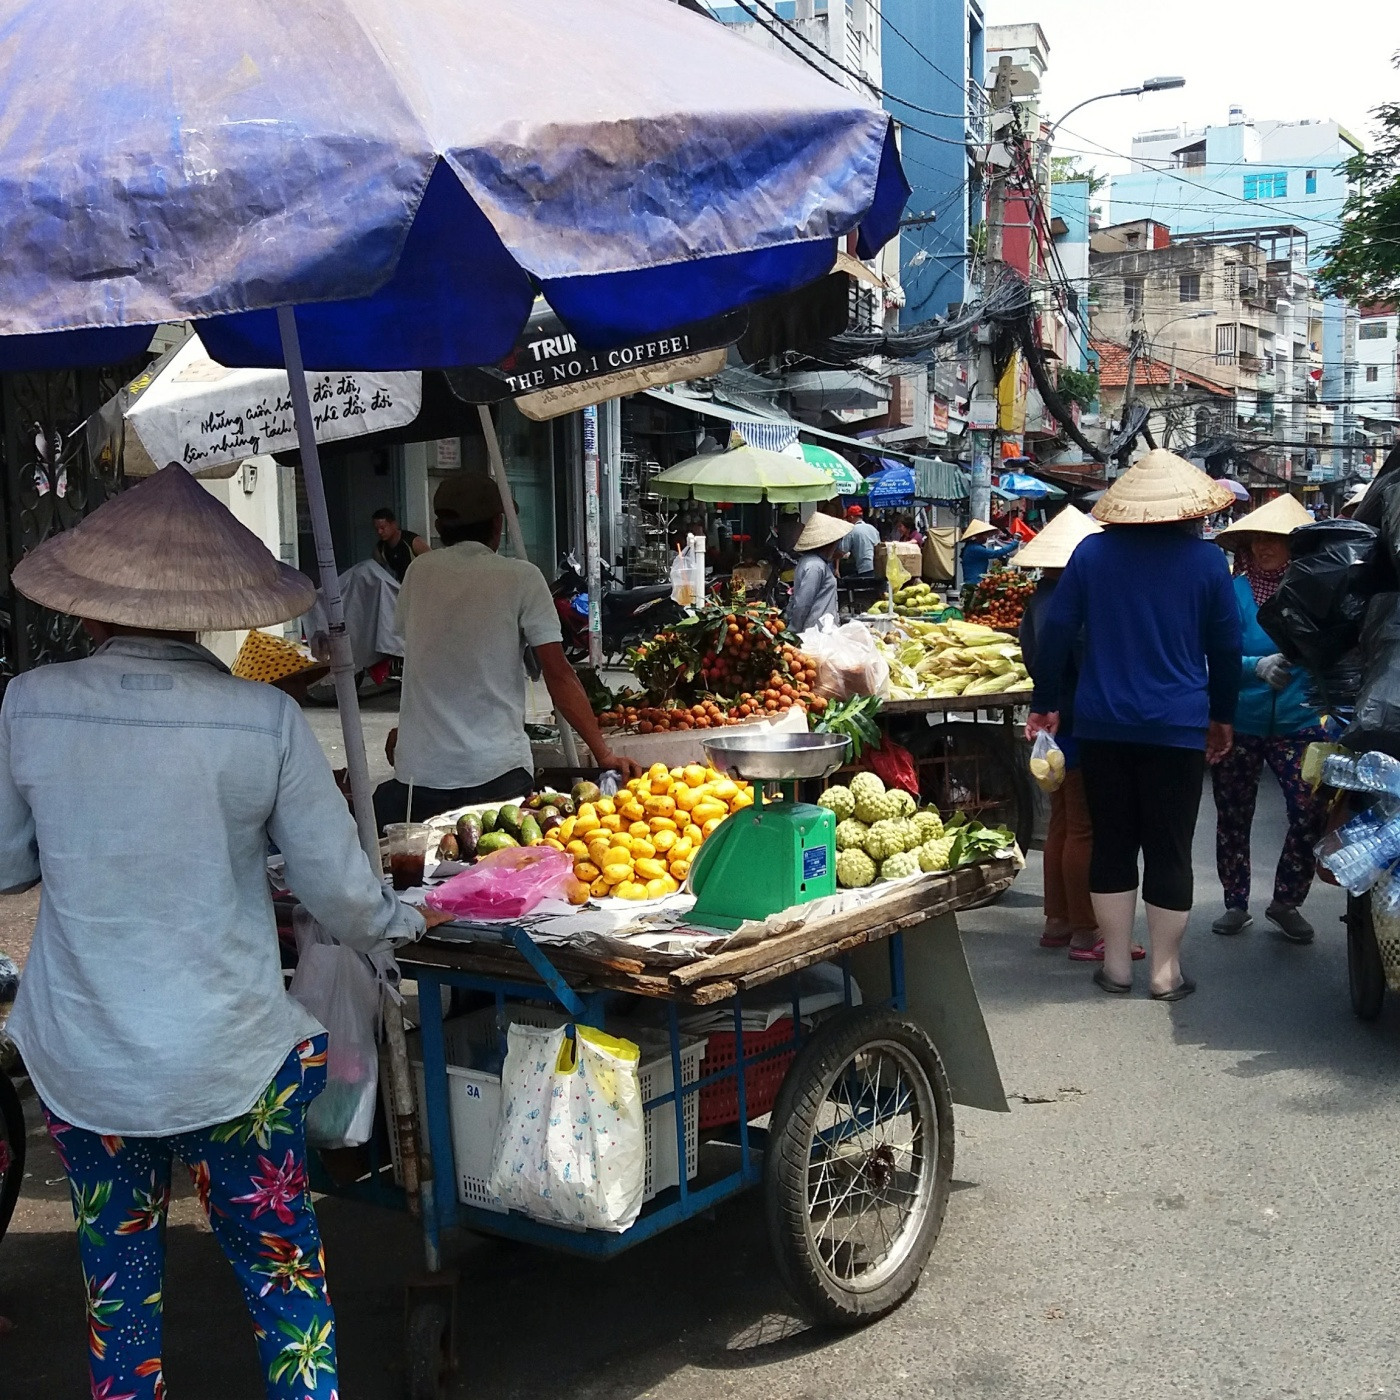 4 months in Vietnam! My job, rent, and the life I can afford here